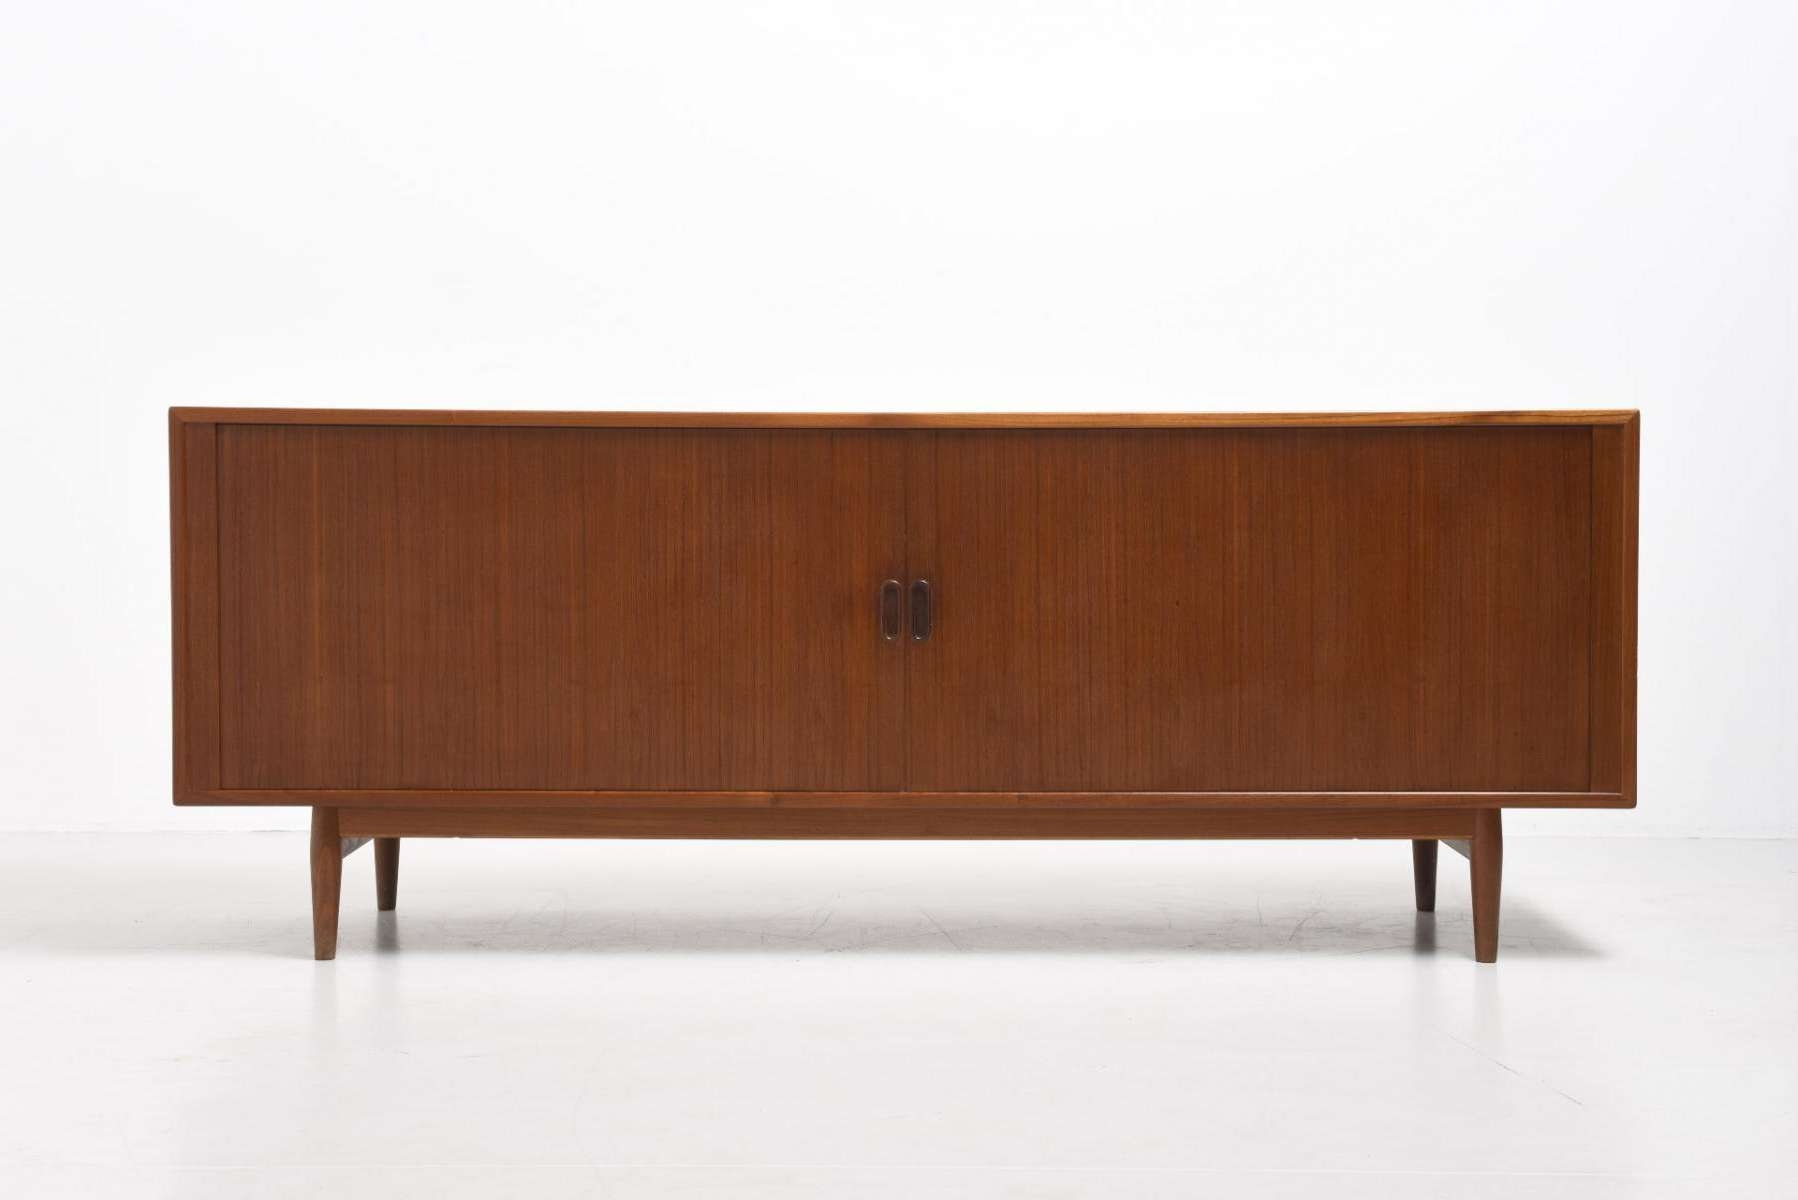 Vintage Sideboardarne Vodder For Sibast For Sale At Pamono In Vintage Sideboards (View 16 of 20)